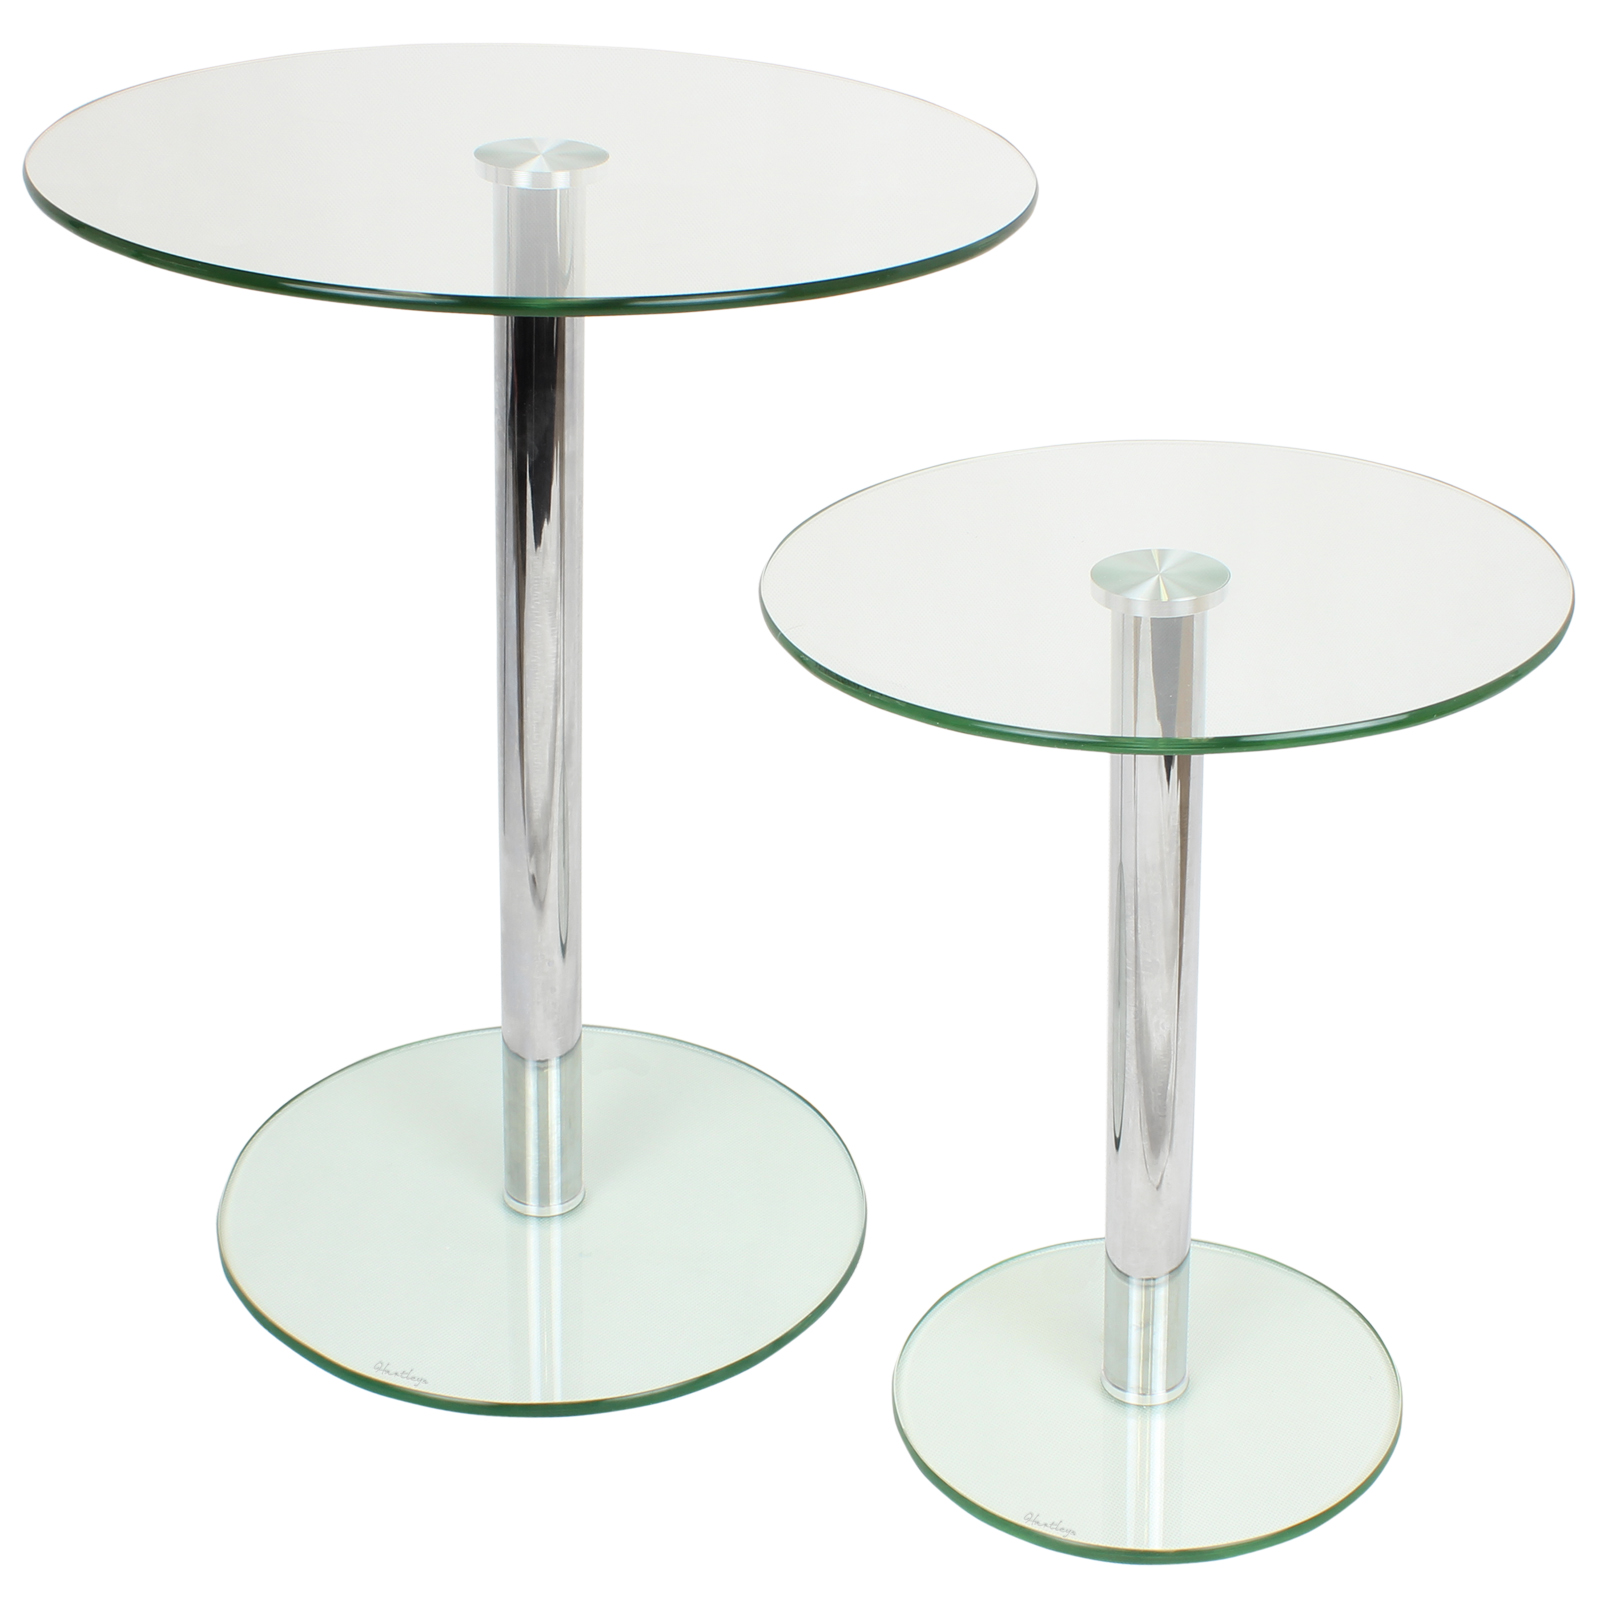 Set Of 2 Round Glass Tables Homeloungeliving Room Sideendlamp